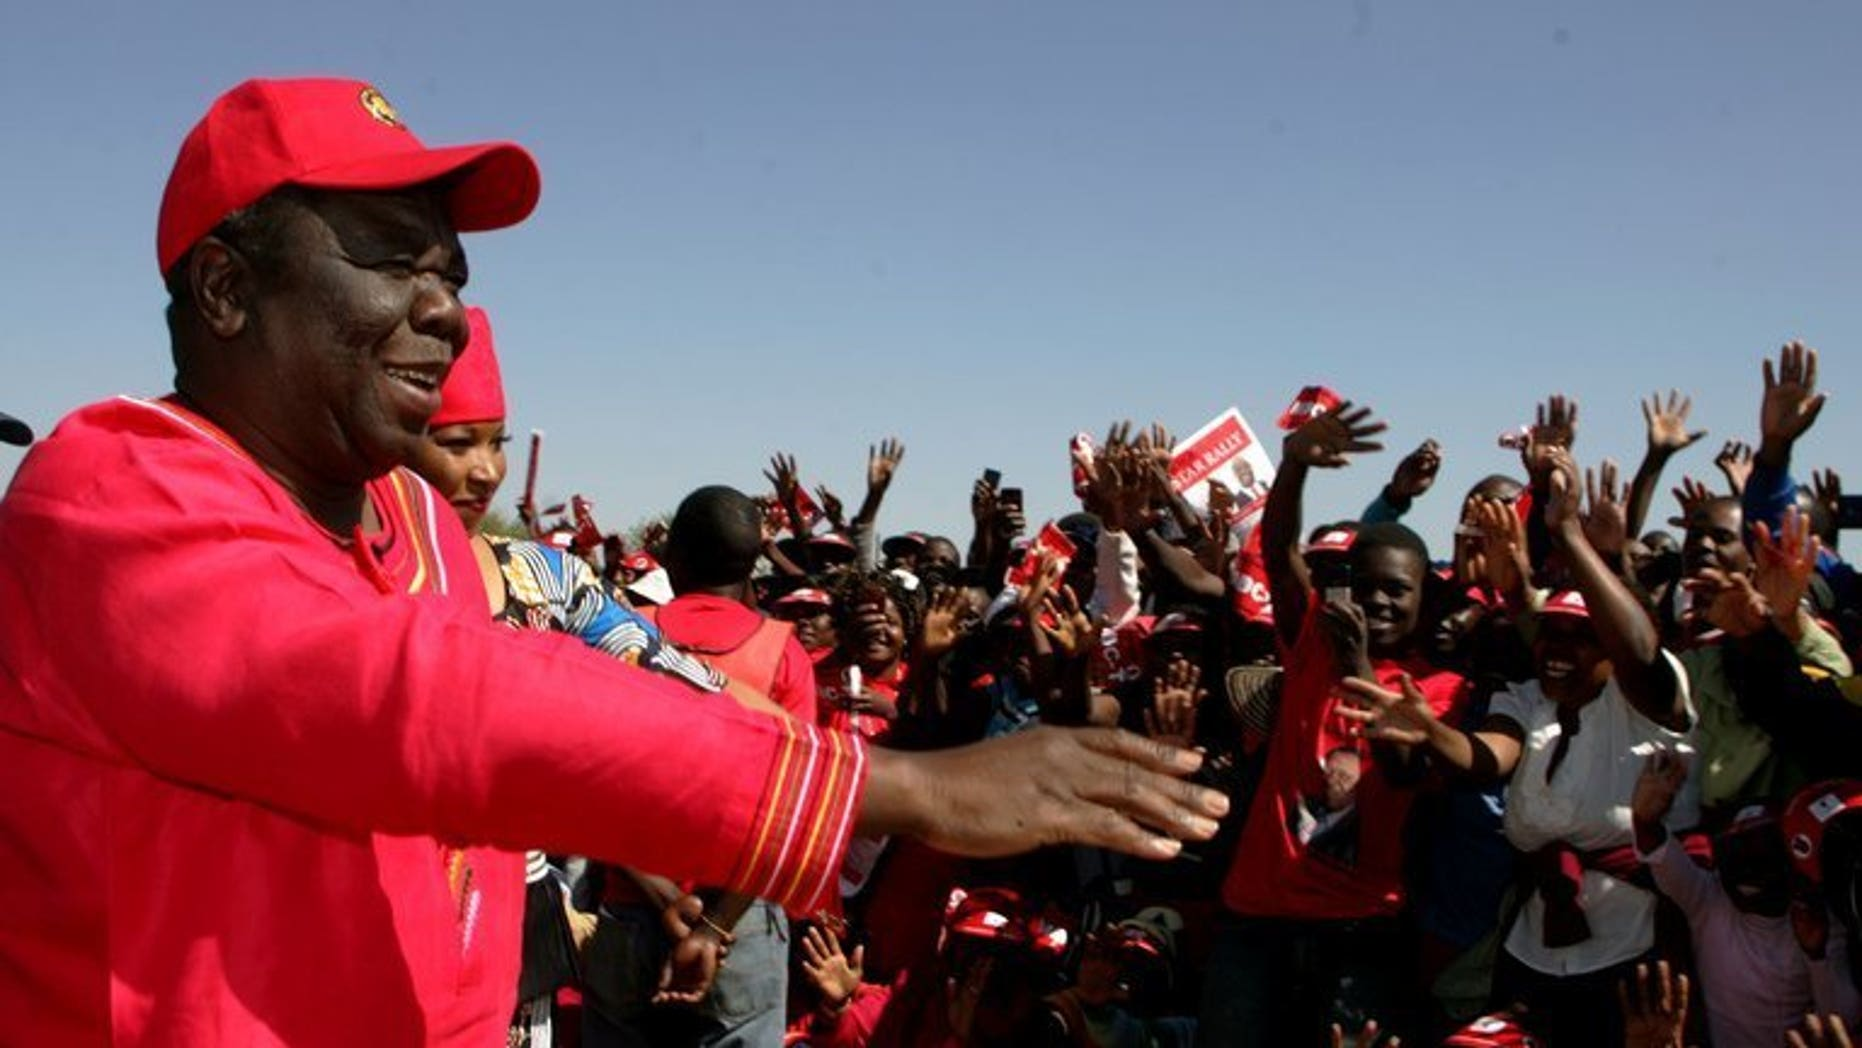 Zimbabwe PM Morgan Tsvangirai addresses an election campaign rally at Mkoba Stadium in Gweru on July 21, 2013. Zimbabwean police on Sunday arrested the election organiser of Prime Minister Morgan Tsvangirai's party after he reported marked ballot papers were found in a dustbin following early voting, the party and police said.